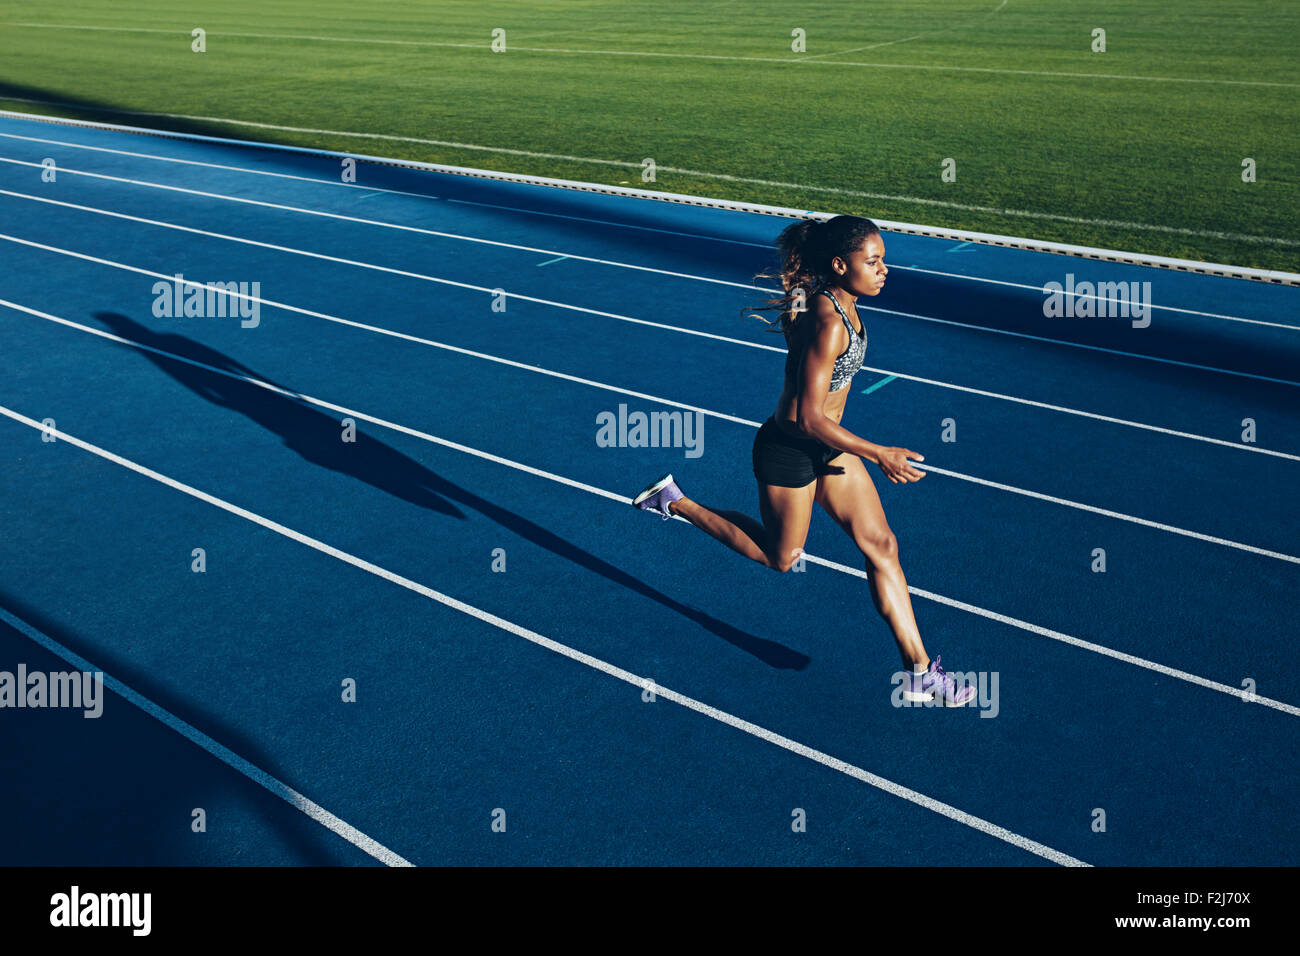 Outdoor shot of young African woman athlete running on racetrack. Professional sportswoman during running training - Stock Image